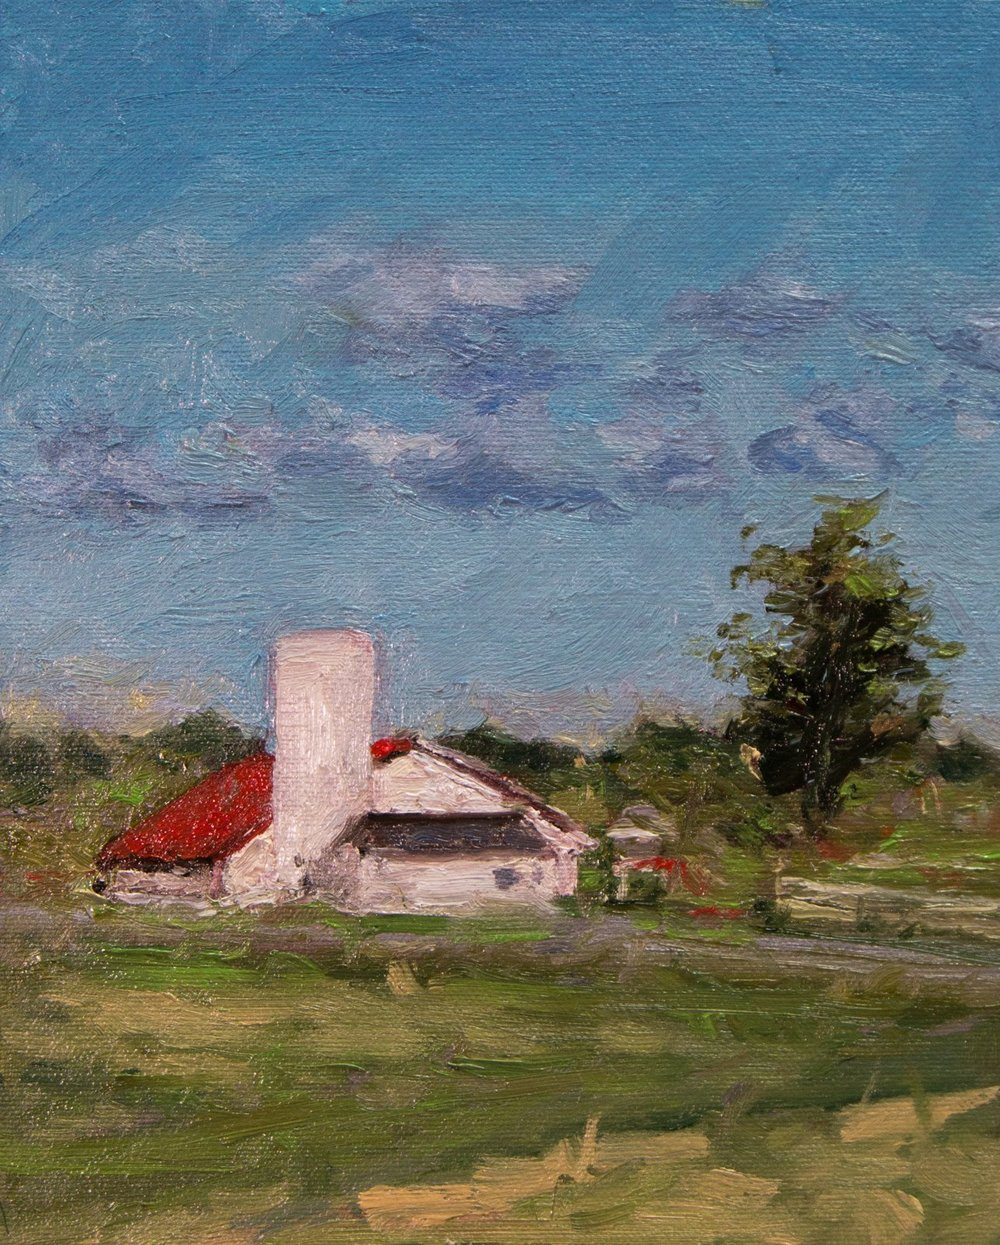 Across from Bakery in Sonoma Oil on Panel.